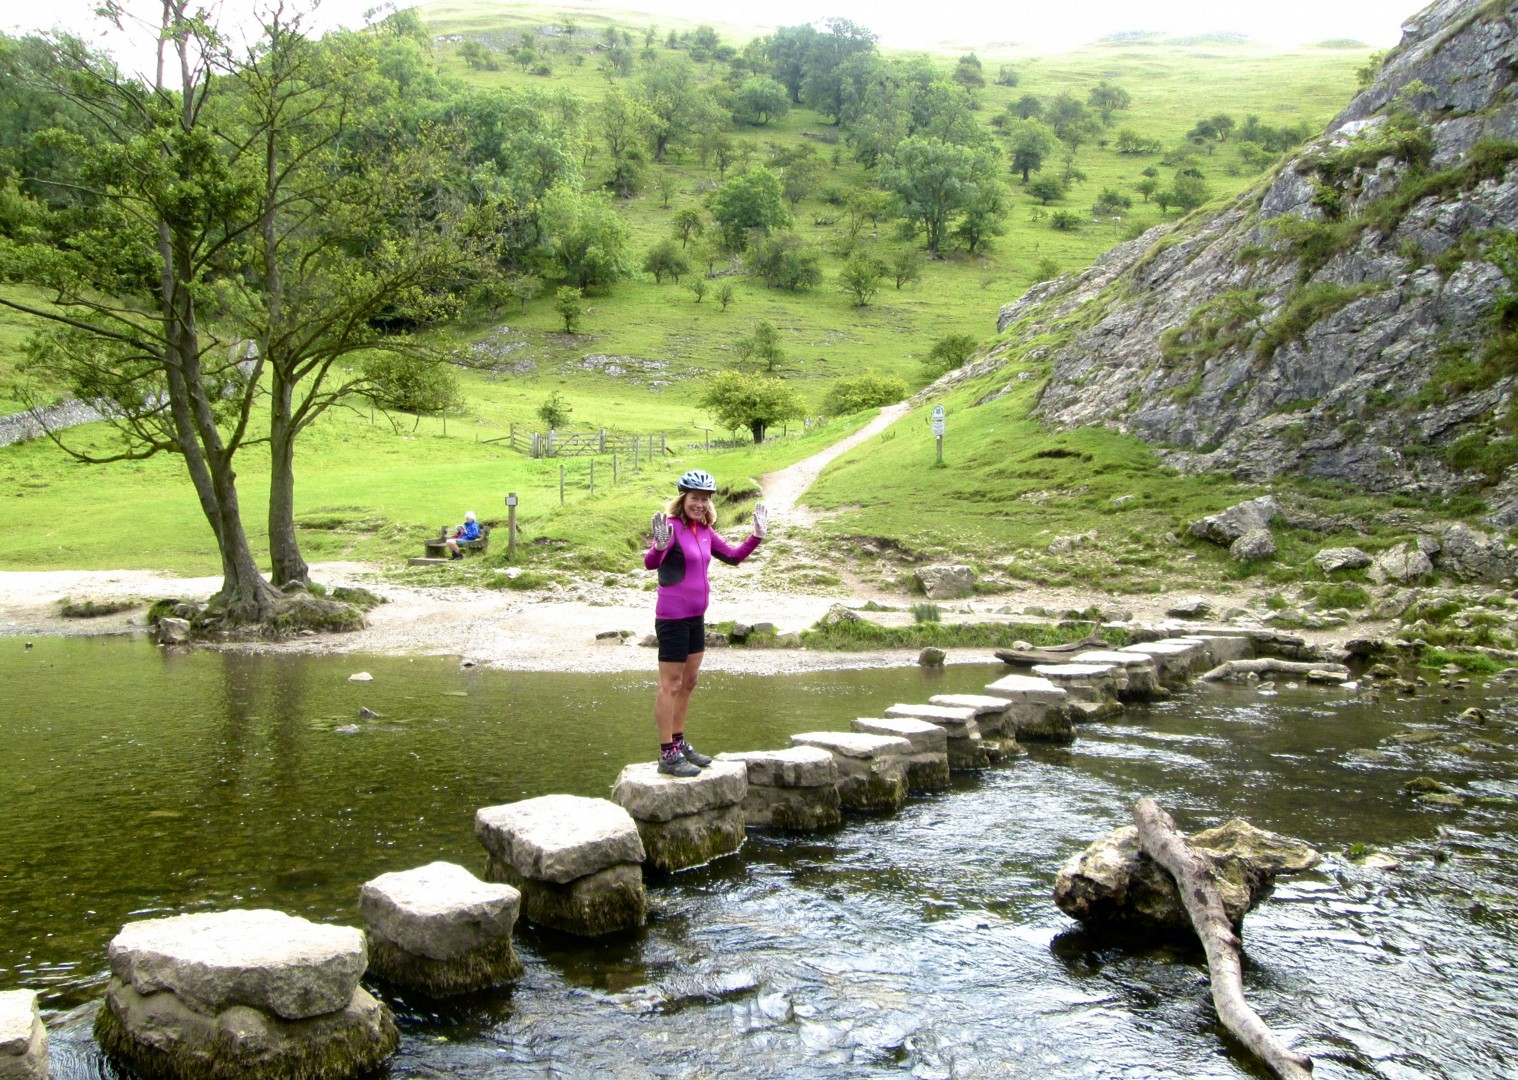 leisure-cycling-holiday-derbyshire-dovedale-steppingstones.jpg - UK - Derbyshire Dales - Dovedale - Self-Guided Leisure Cycling Holiday - Leisure Cycling